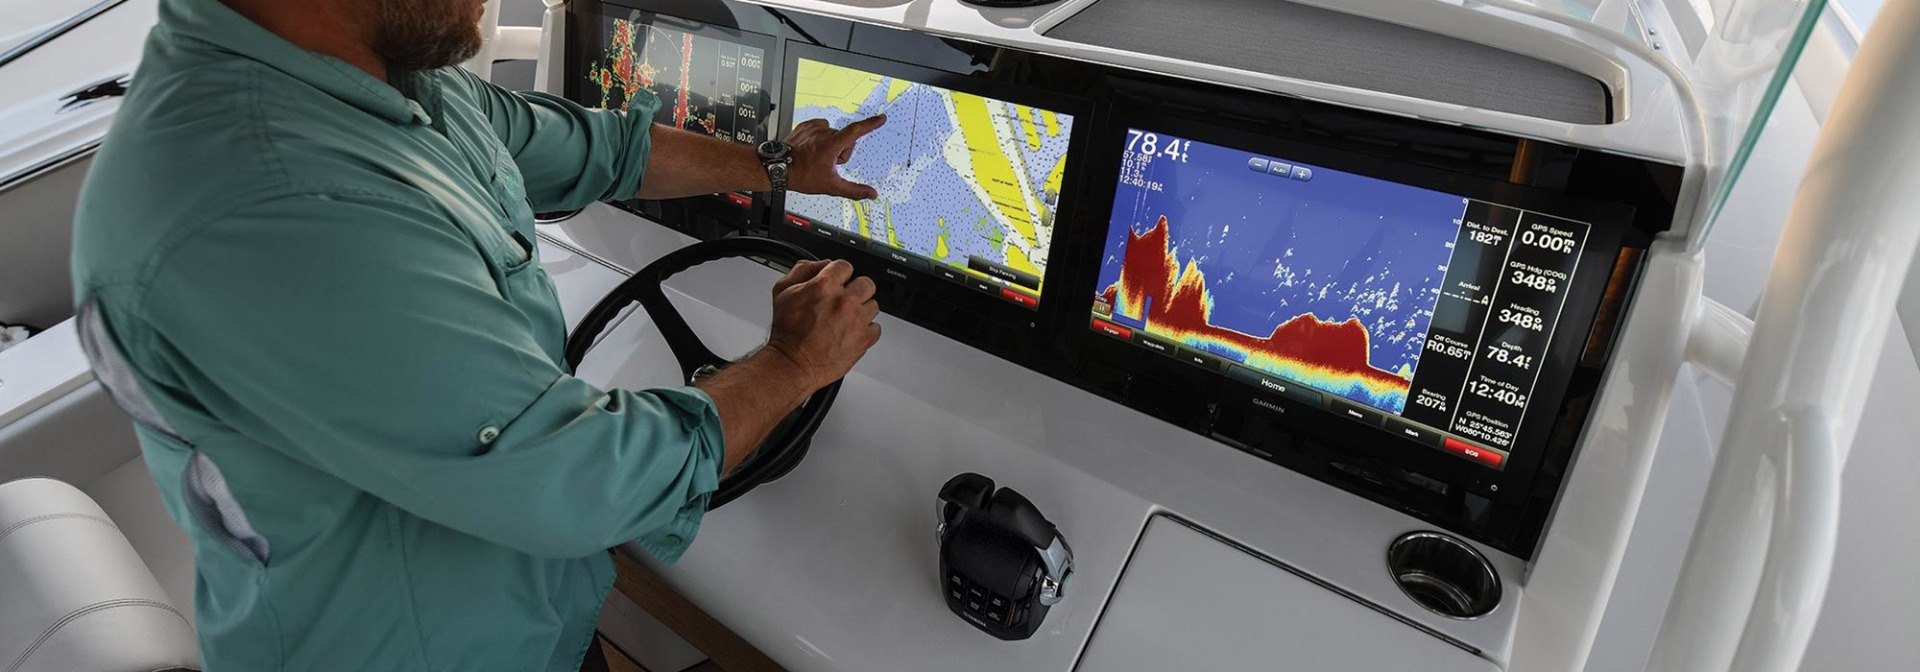 IP rated and NEMA rated LCD displays on a marine boat, touchscreen control panel